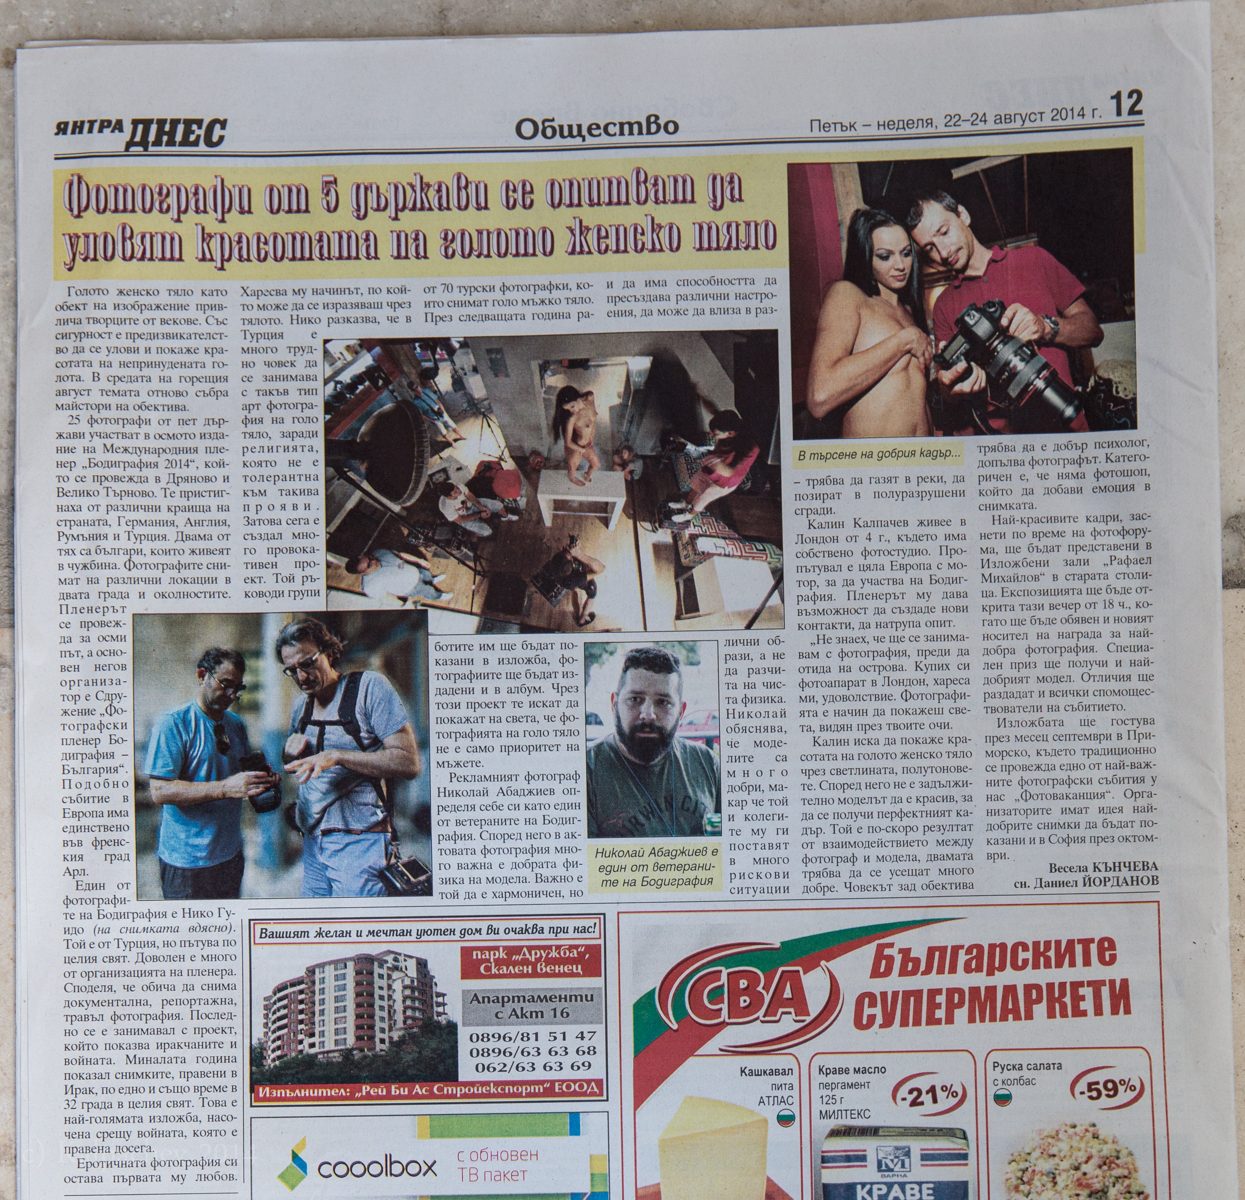 Interview with me for the local newspaper – Bodygraphia 2014